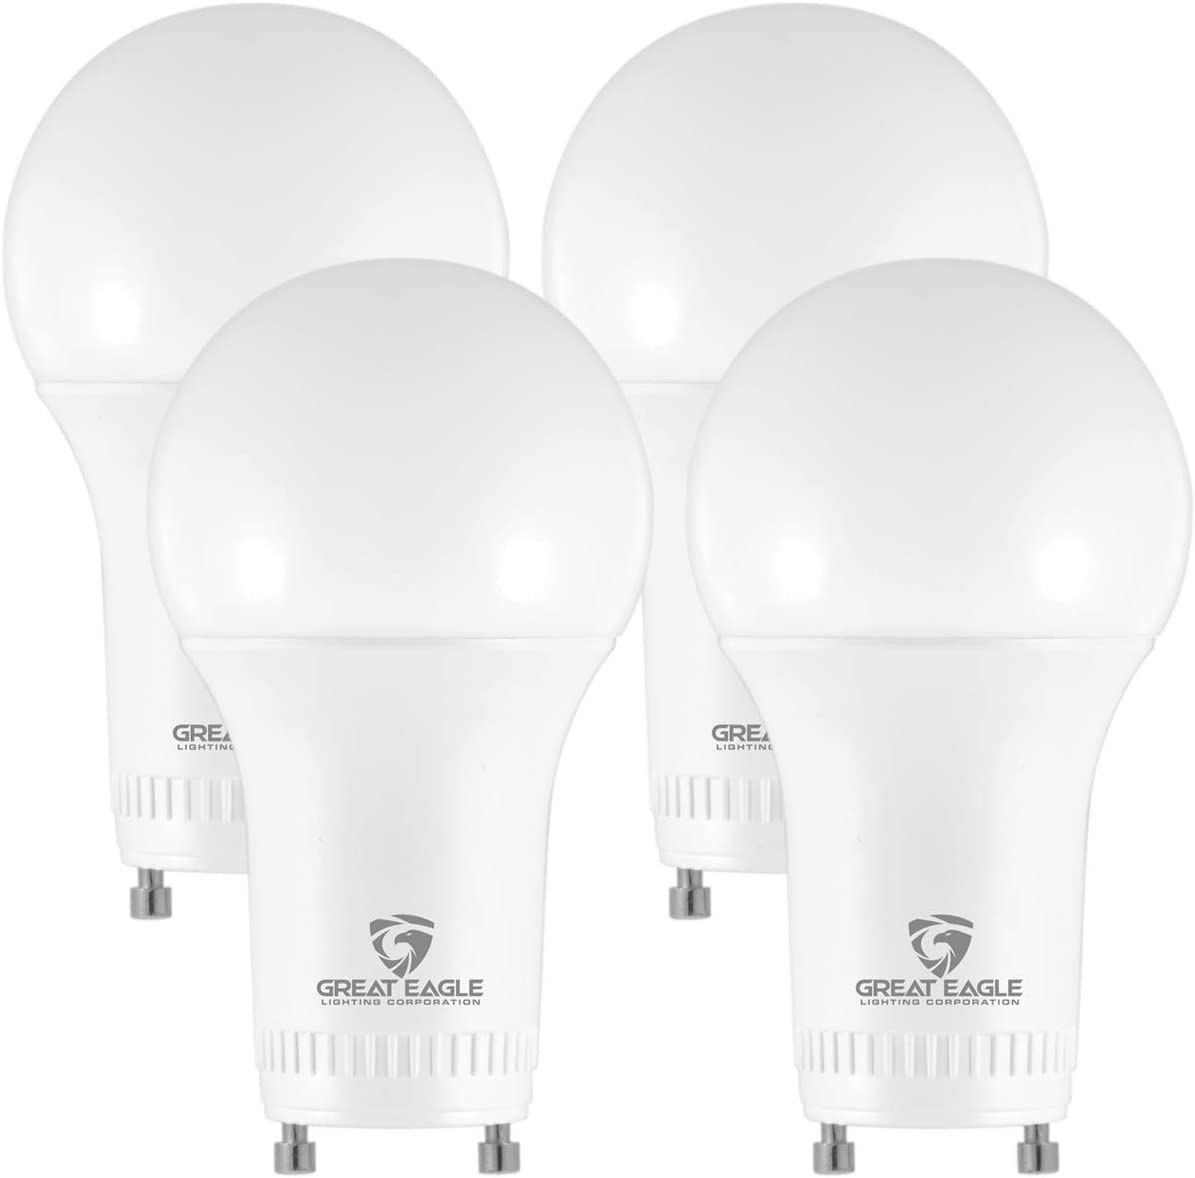 Great Eagle LED GU24 Base, A19 Shape, 9W (60W Equivalent), Dimmable, 3000K Soft White, 810 Lumens, UL Listed, Twist-in Light Bulb (4-Pack)